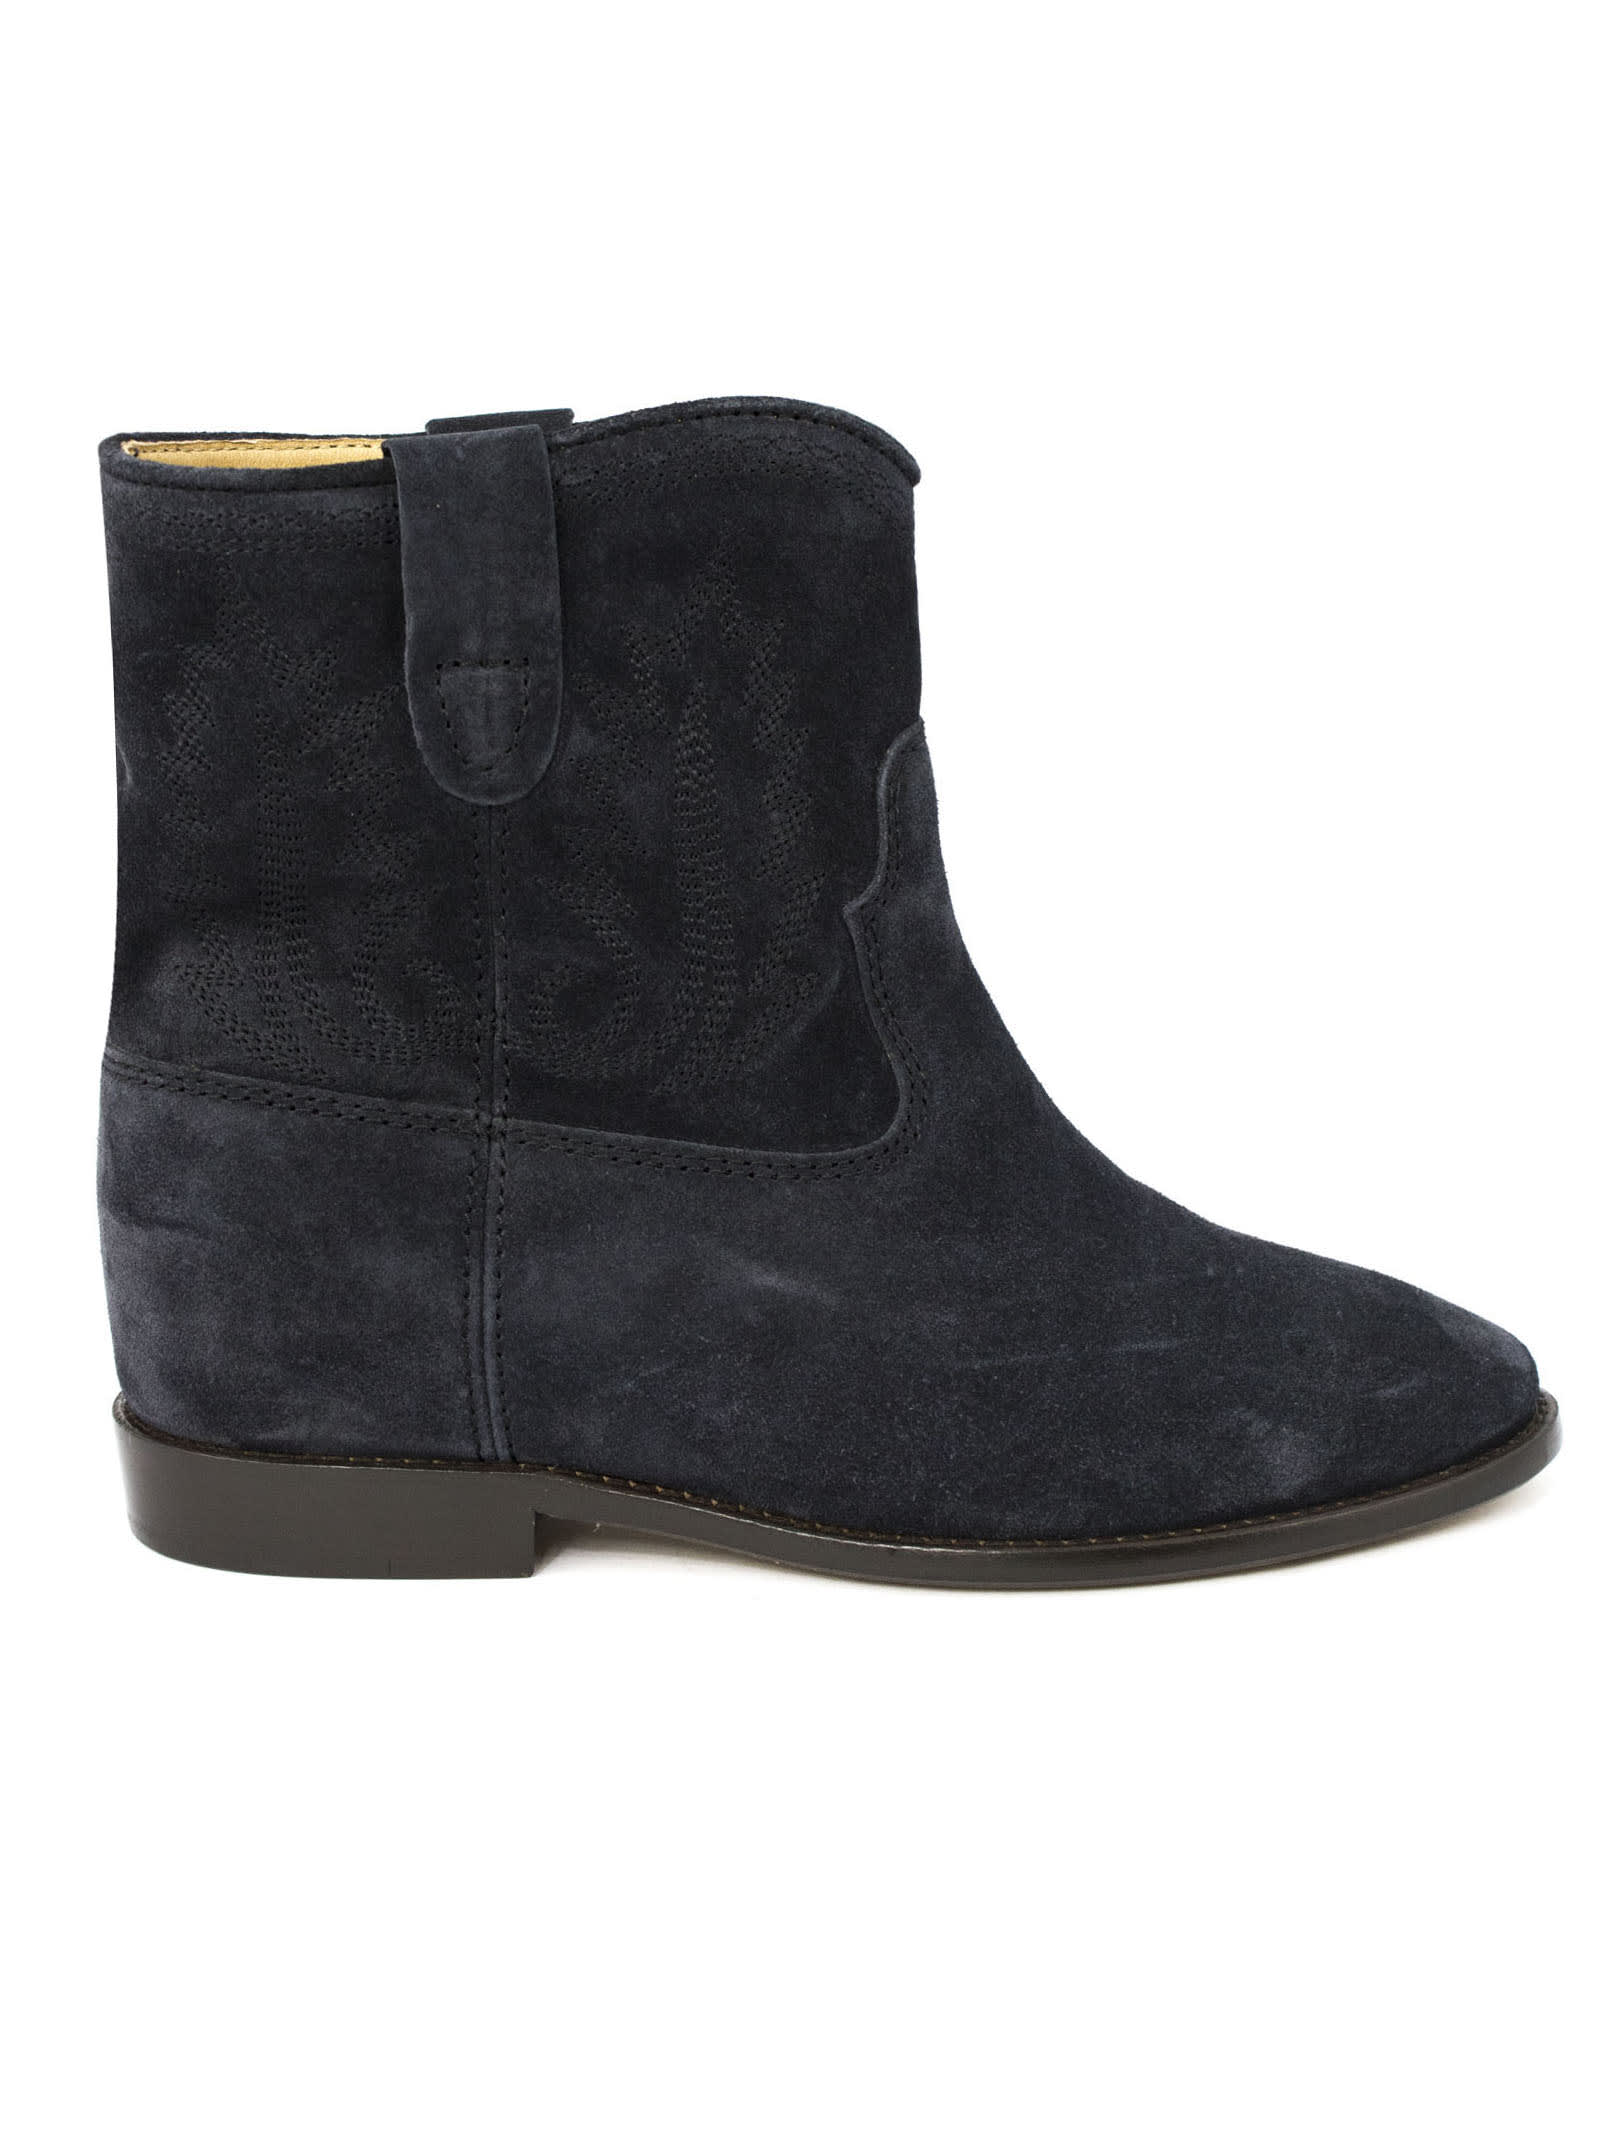 Isabel Marant Faded Black Leather Crisi Ankle Boots